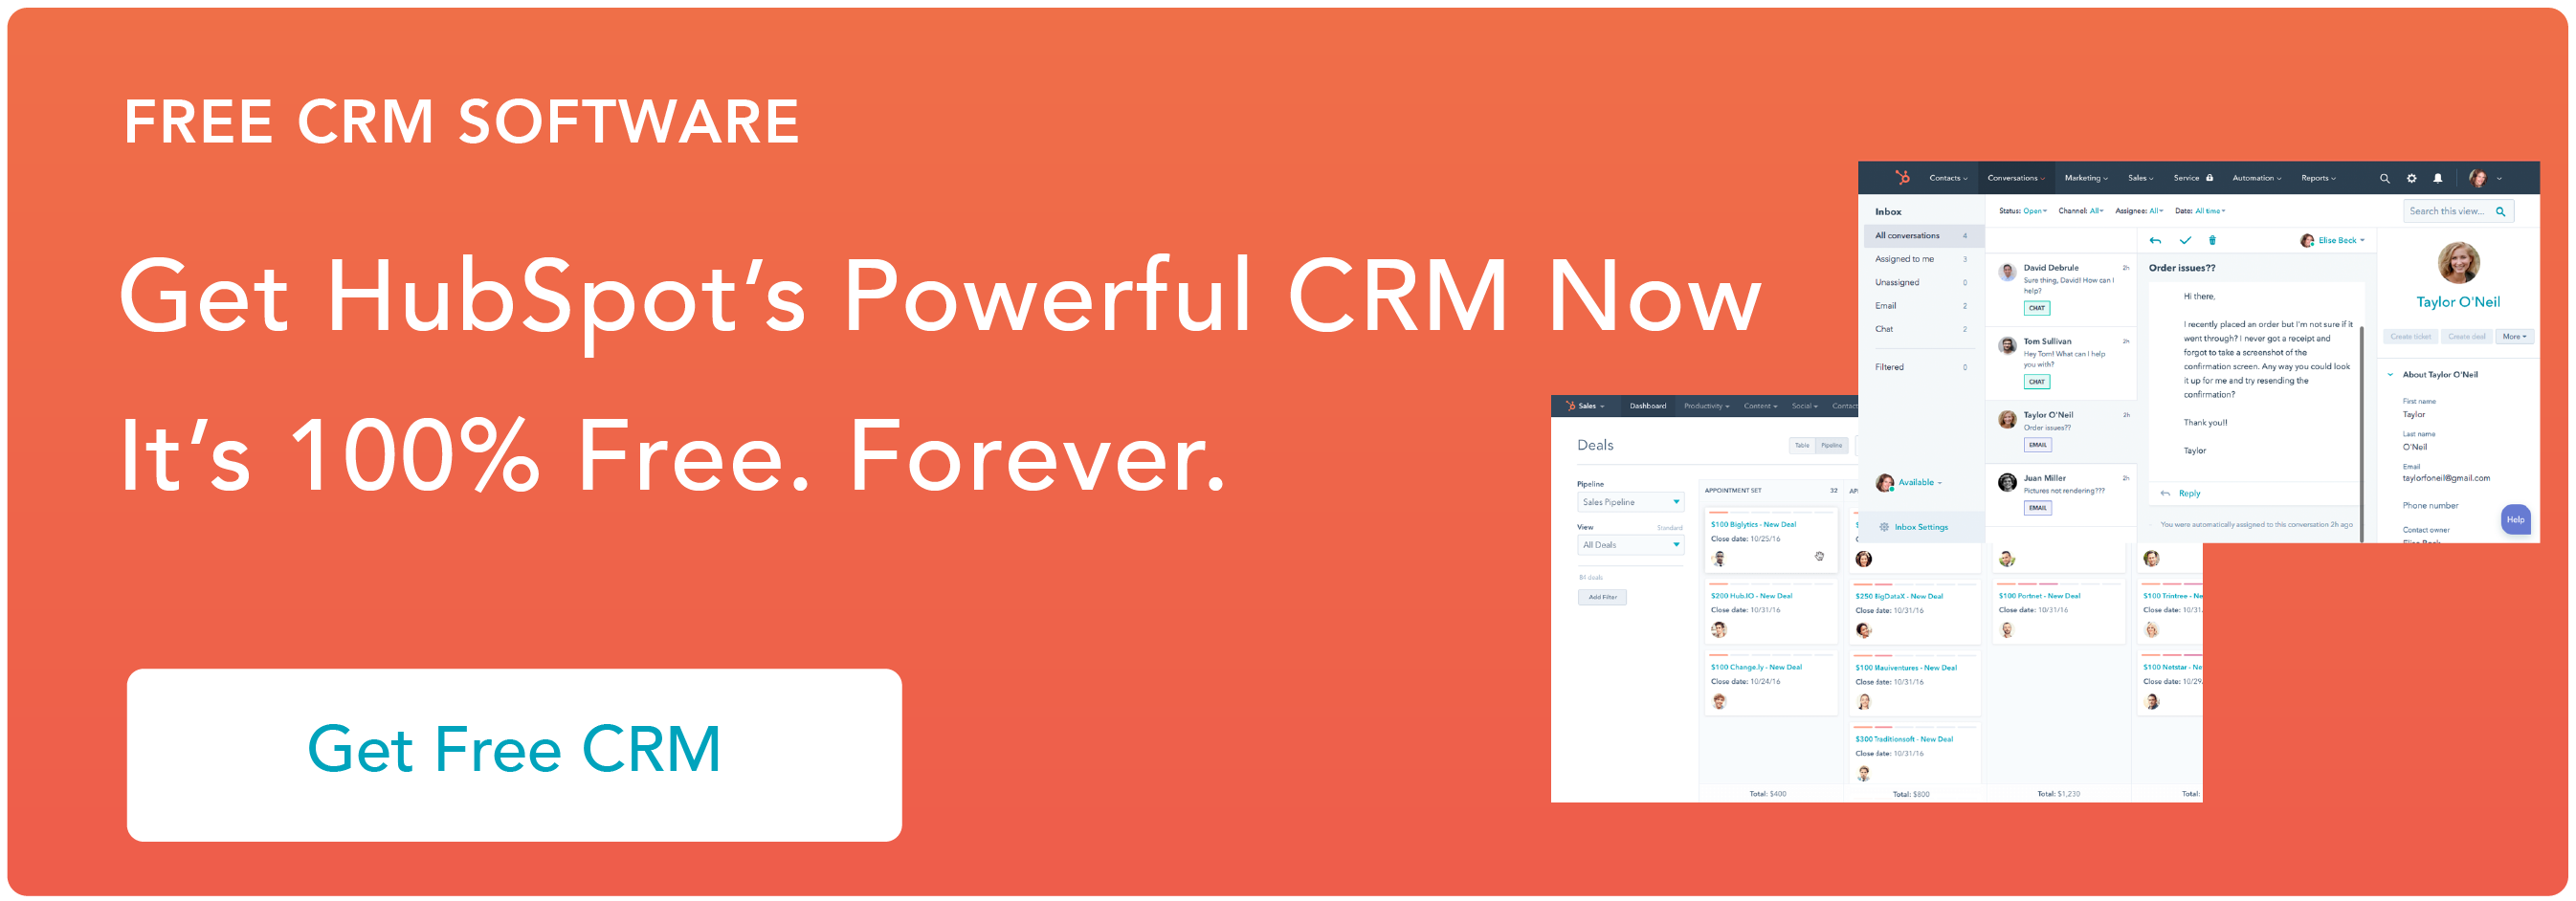 crm software free